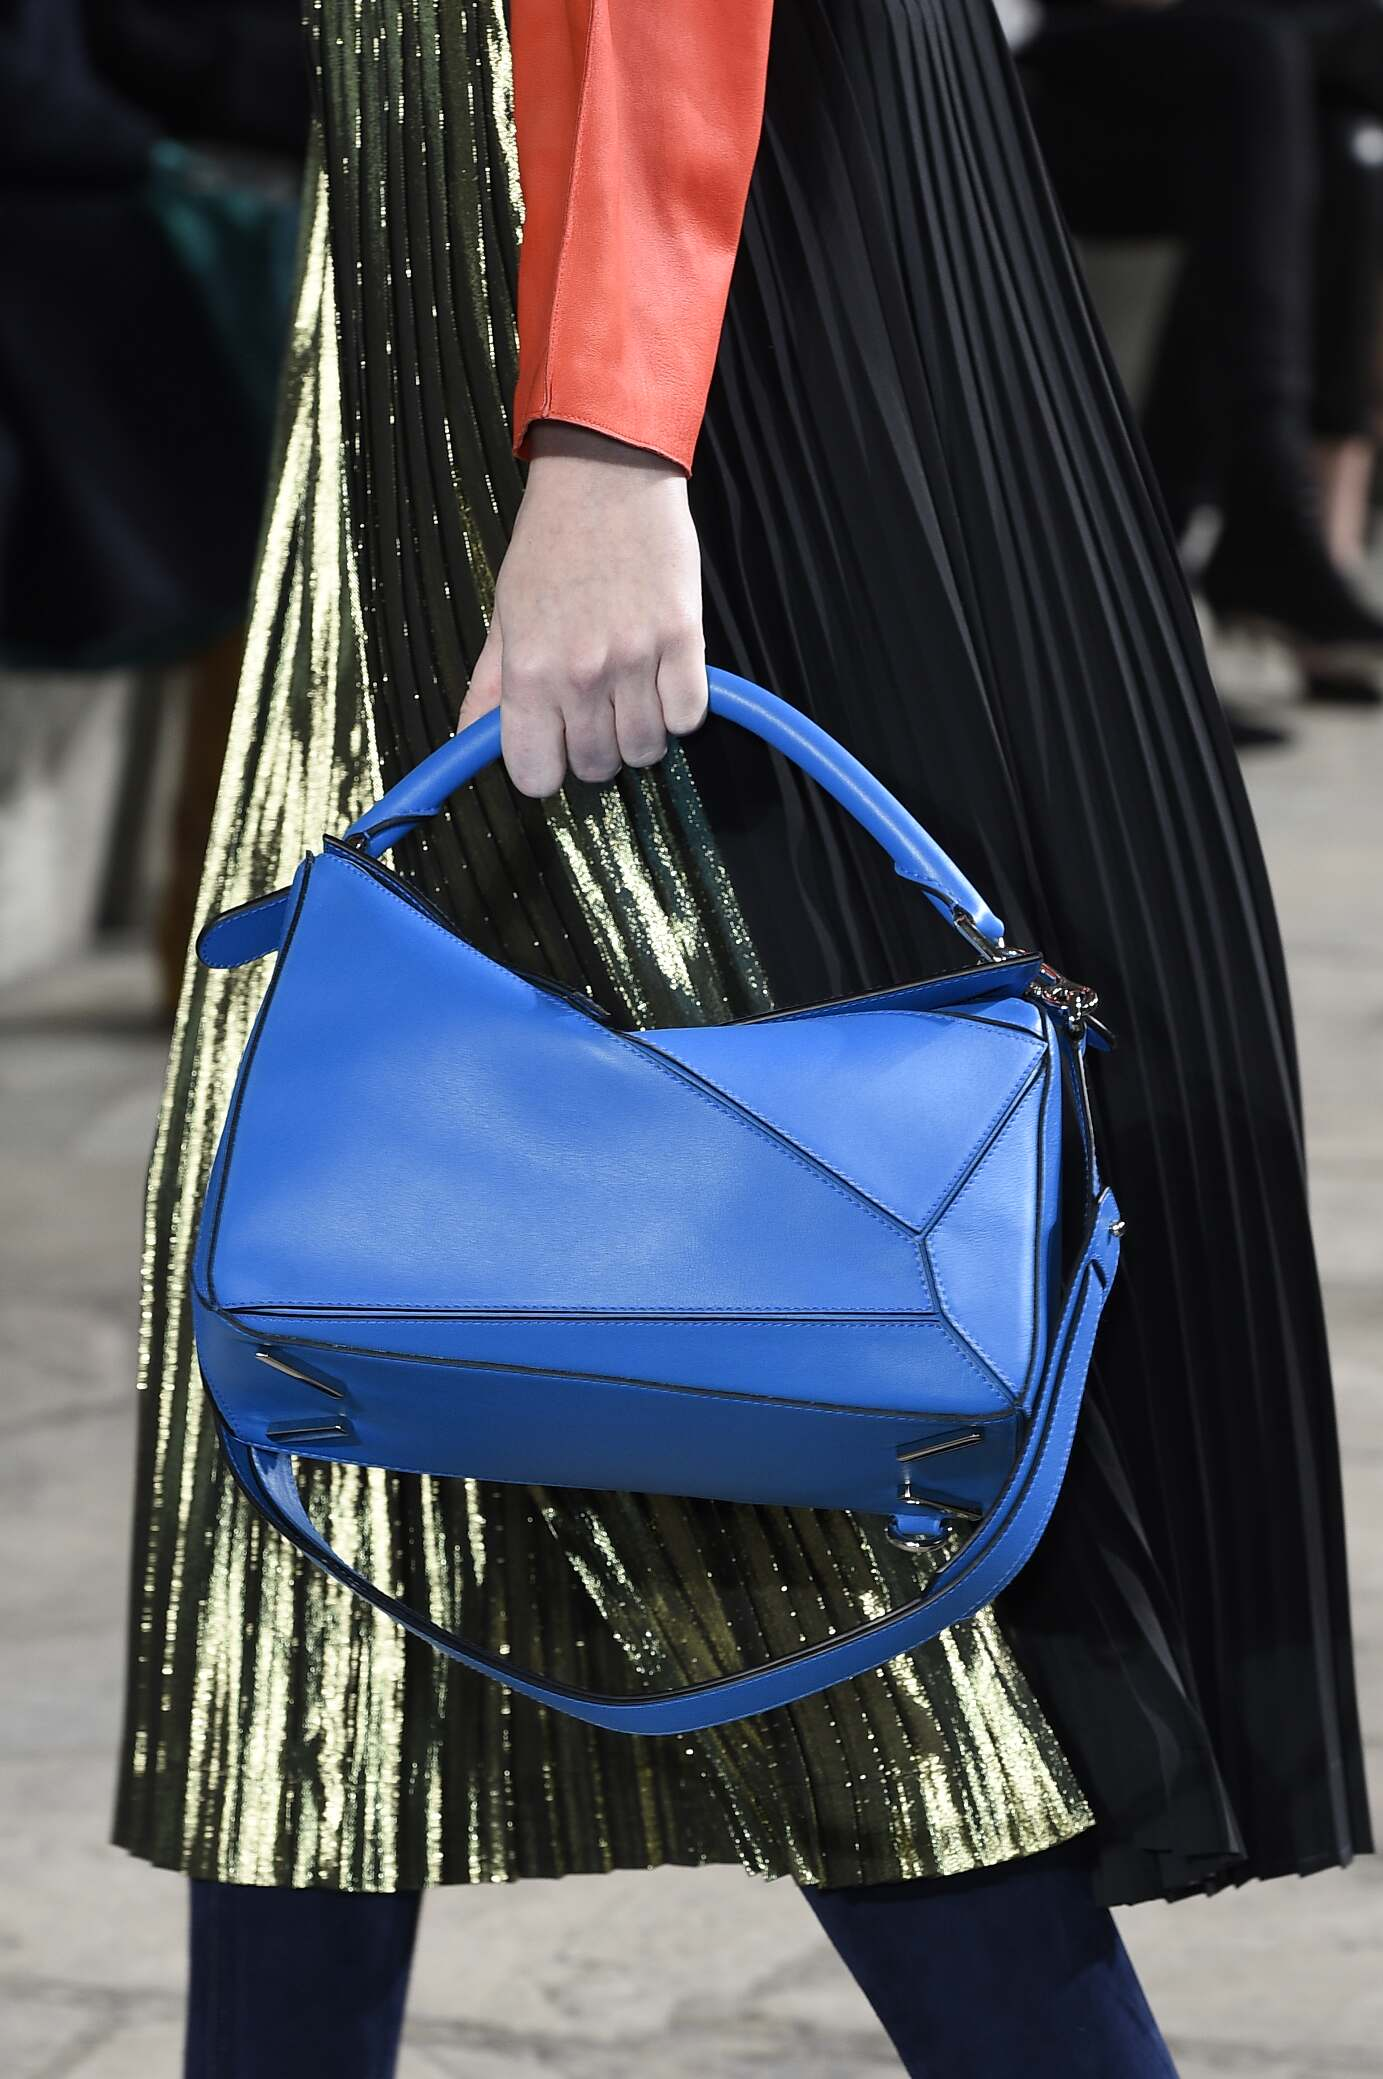 2015 Fall Fashion Woman Loewe Bag Detail Collection